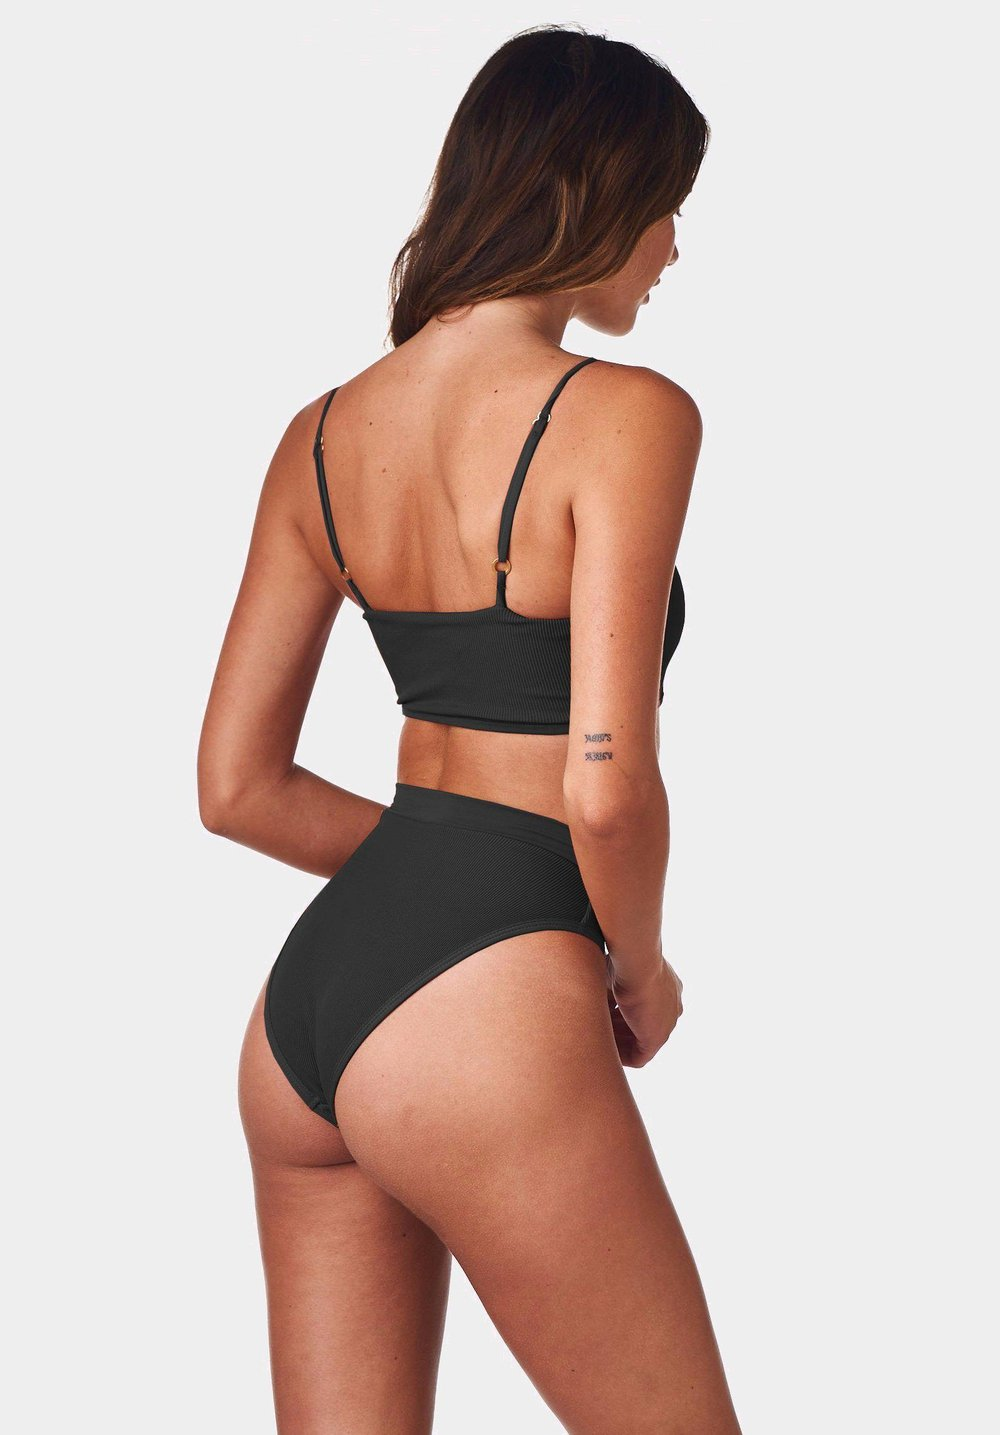 L Space - Rebel Top x Frenchi Bottom Bikini - Luxe Cartel